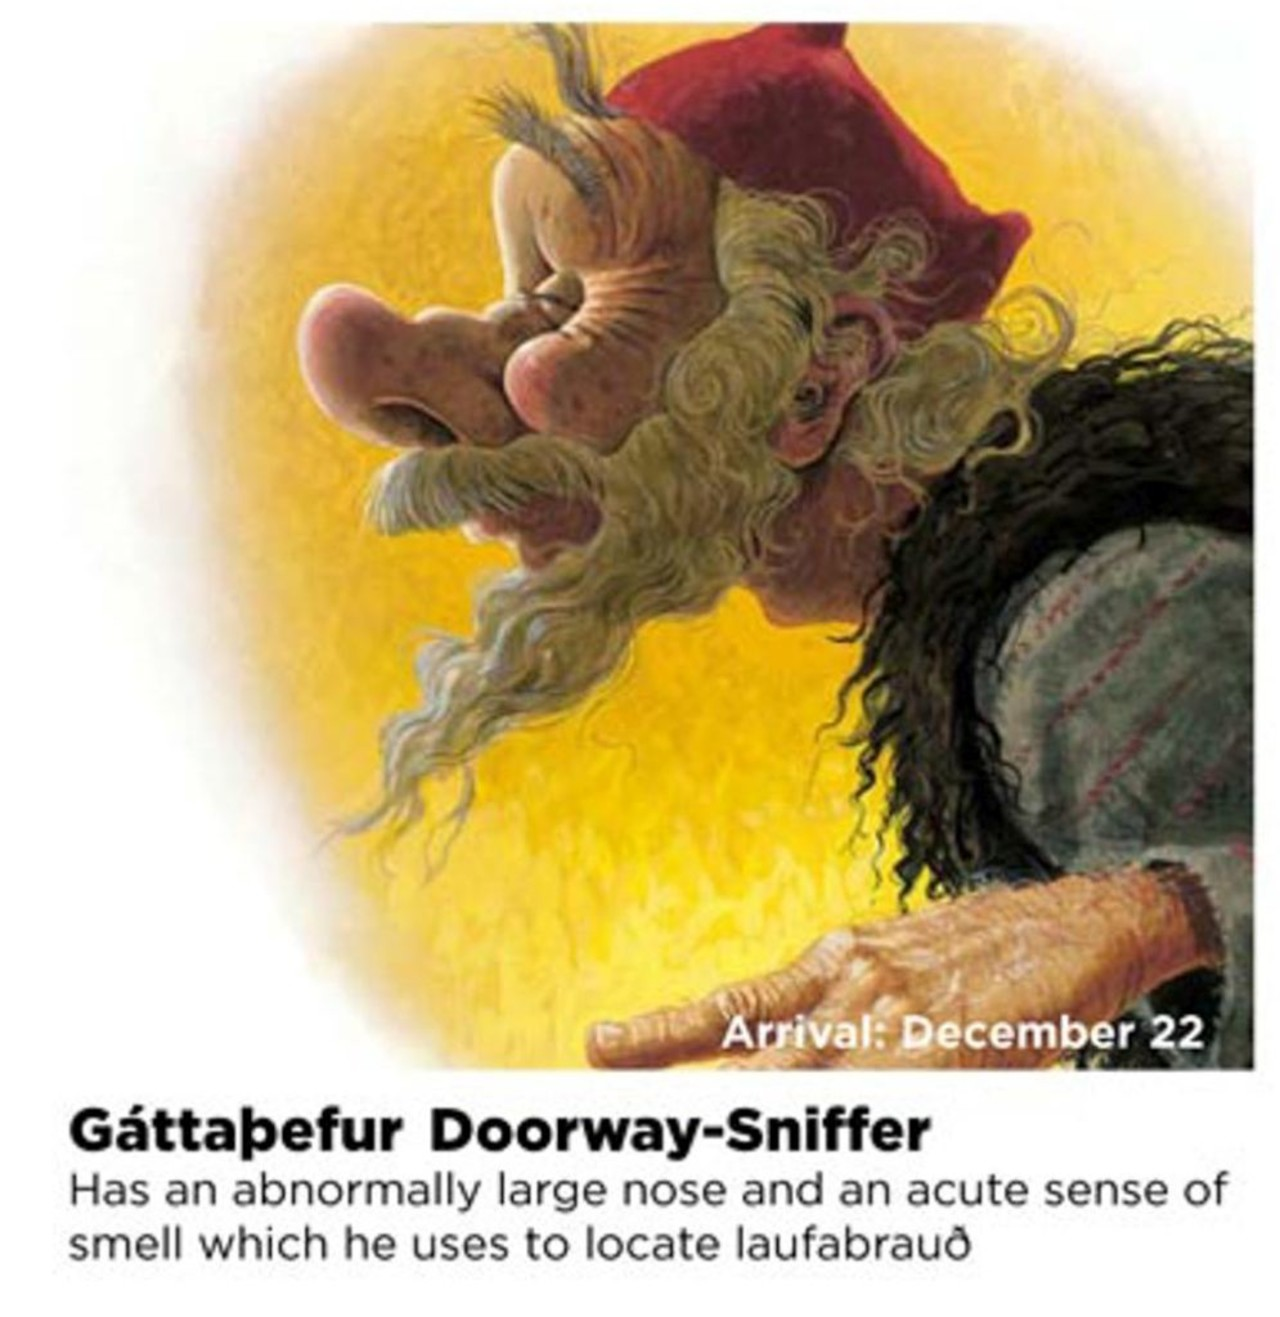 Gáttaþefur (Doorway-Sniffer) on of the 13th Icelandic Yule lads, he has a very big nose and a funny red hat